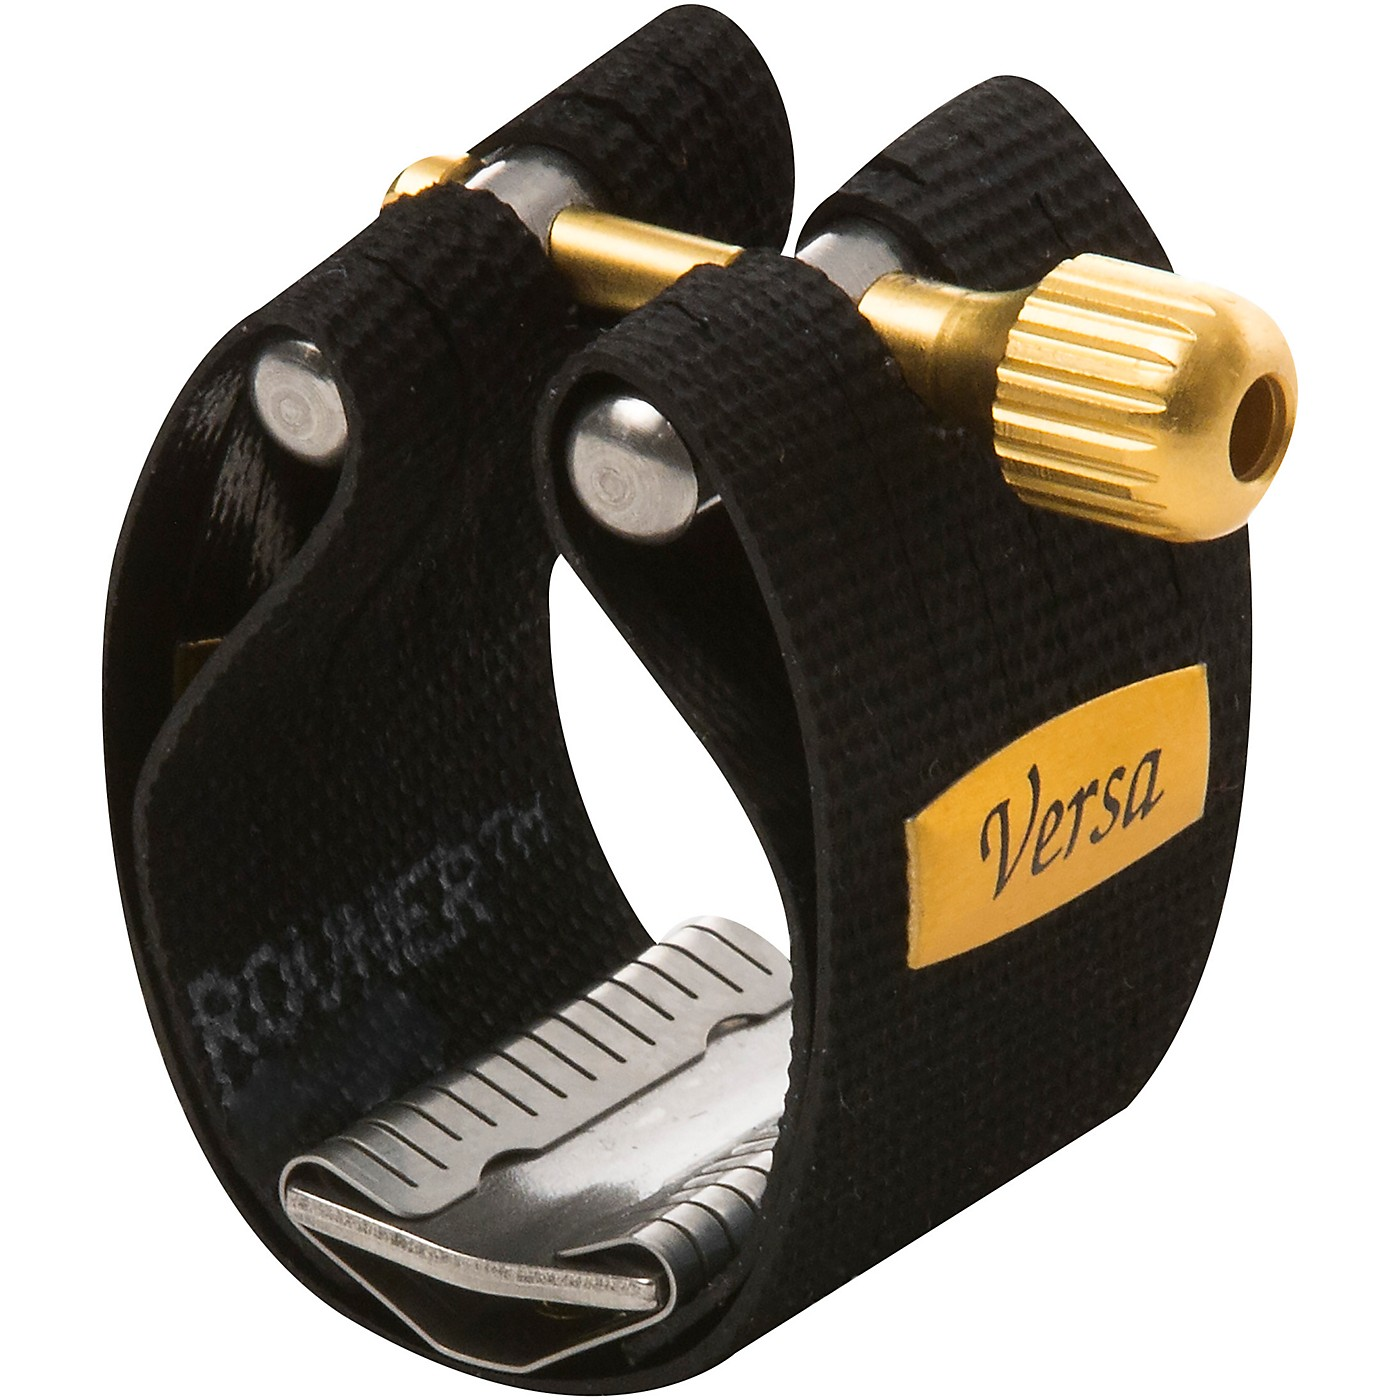 Rovner Versa Clarinet Ligature and Cap thumbnail